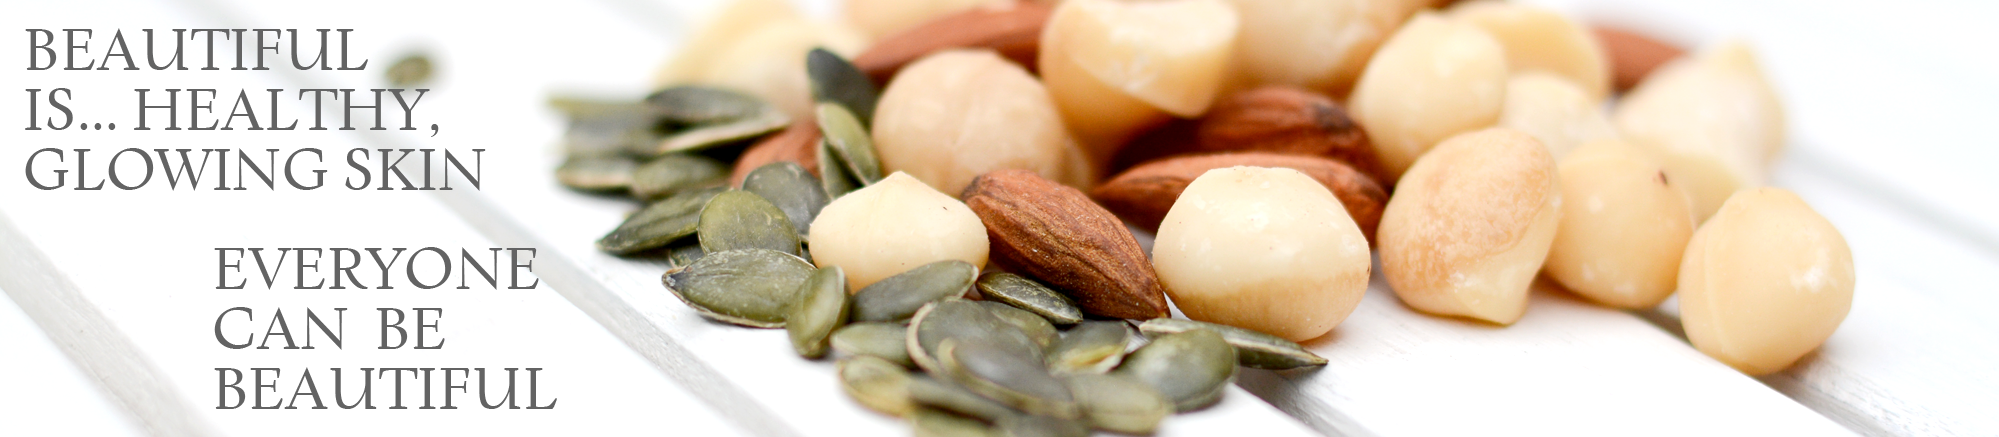 macad-almond-pumpkin-seed-dsc-2977-thin-text.png